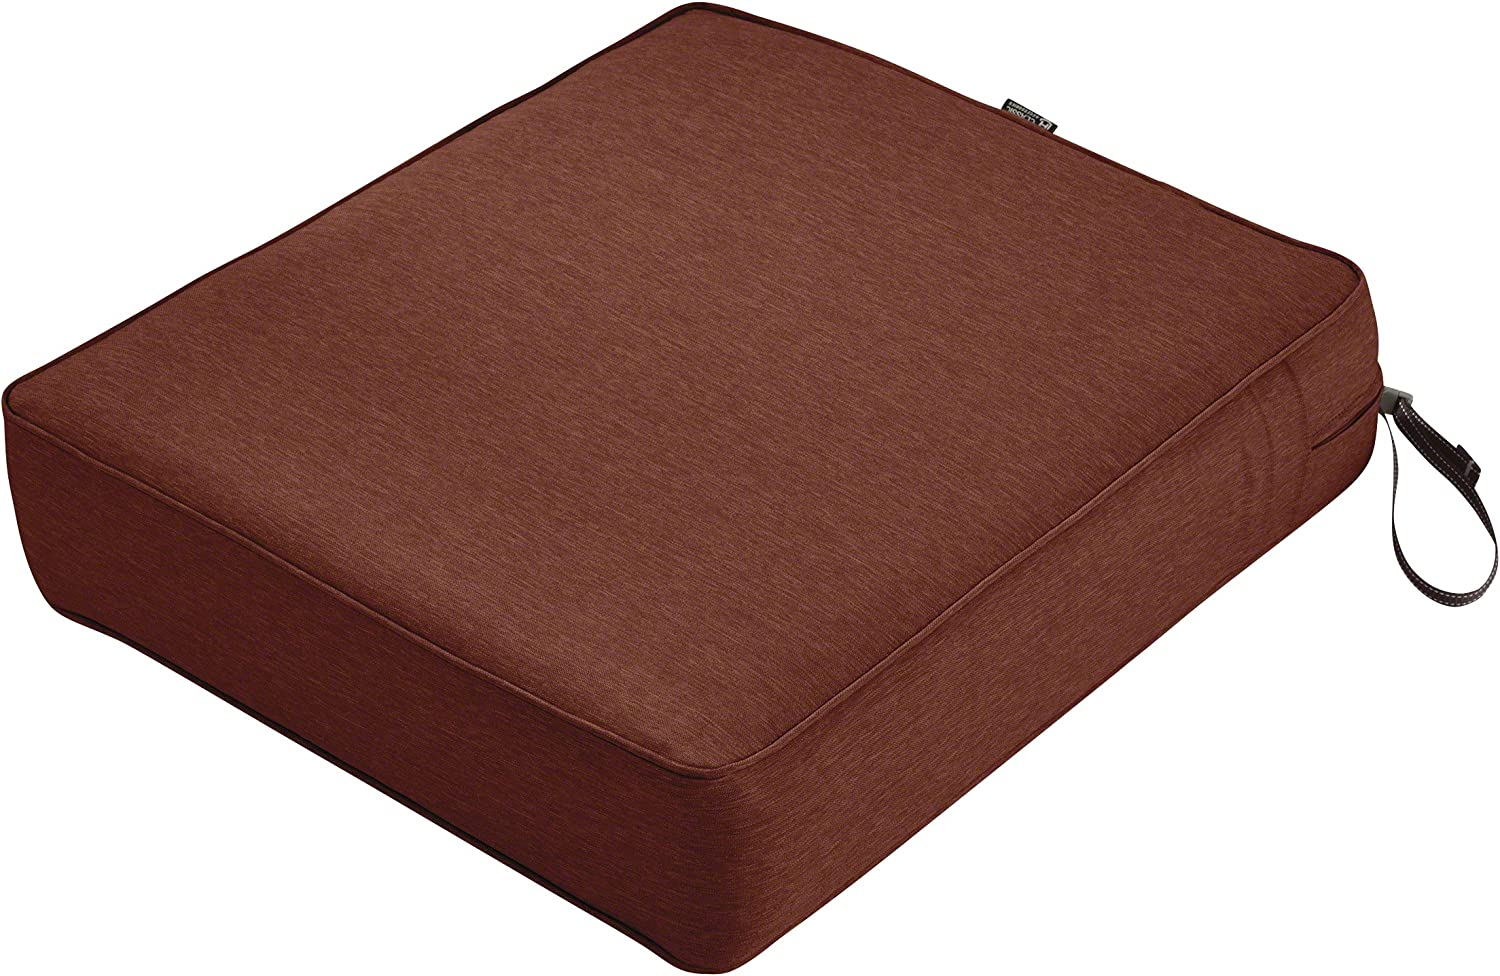 Classic Accessories Montlake Water-Resistant 23 x 25 x 5 Inch Rectangle Outdoor Seat Cushion, Patio Furniture Chair Cushion, Heather Henna Red